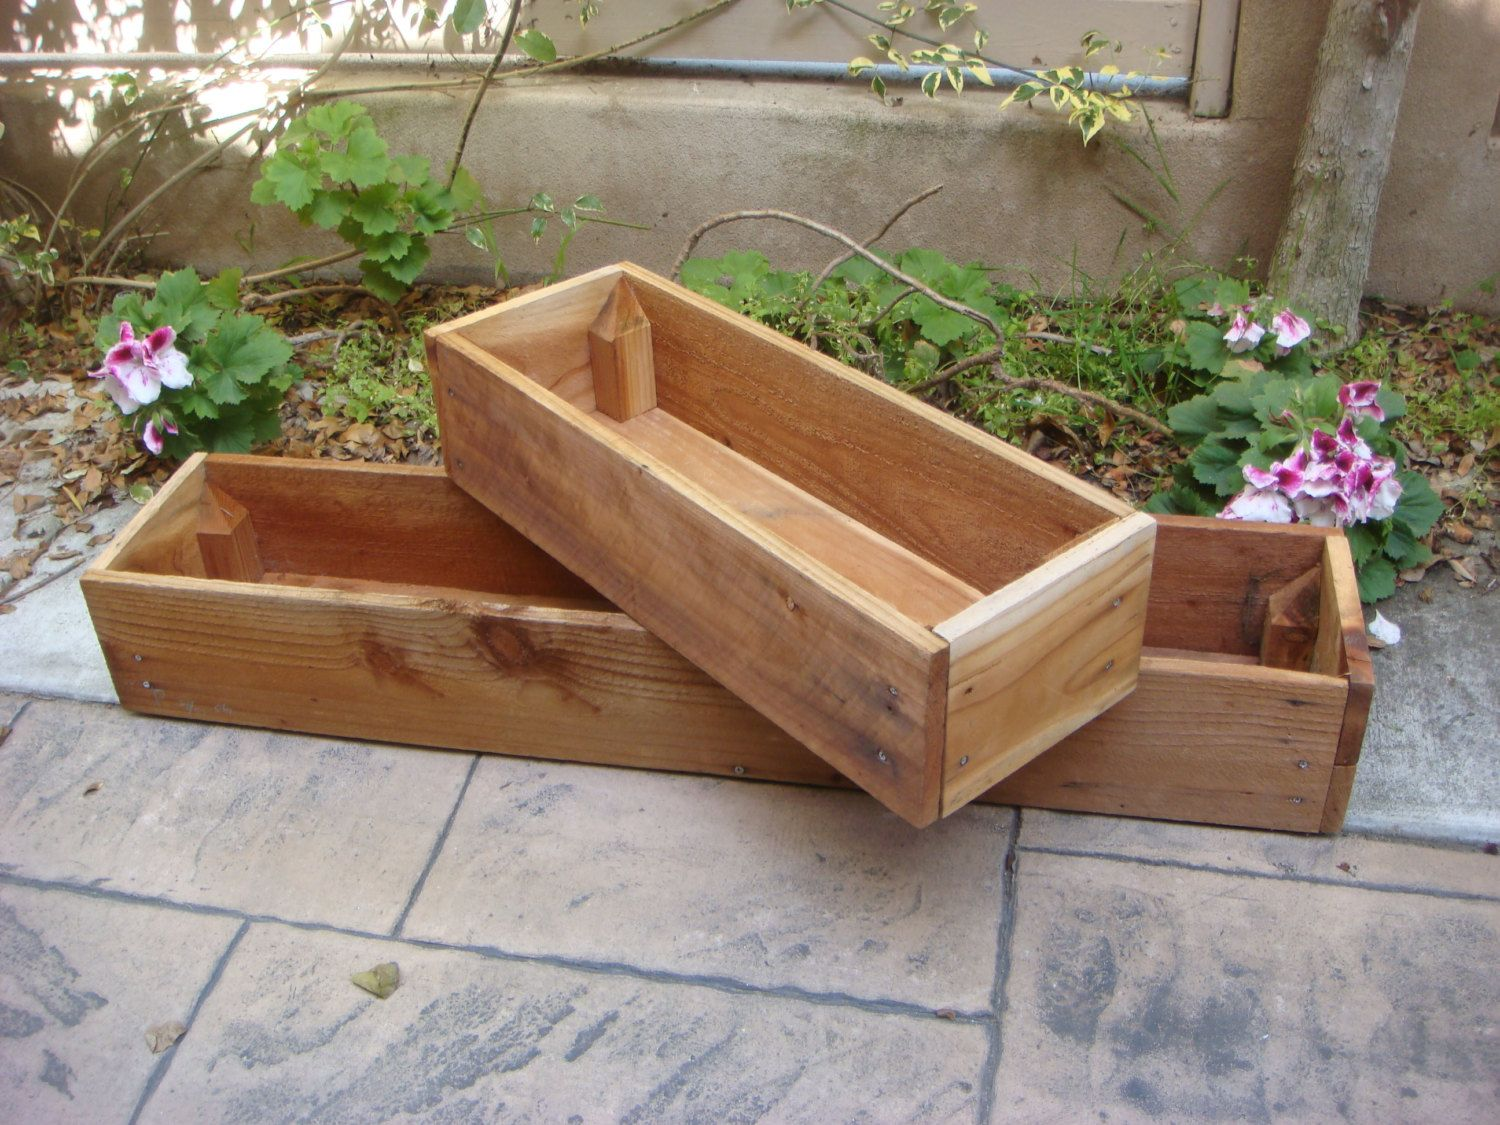 We Share Planters Amazing Large Outdoor Planters For Sale Extra In 2020 Diy Wood Planter Box Diy Wooden Planters Planter Box Plans